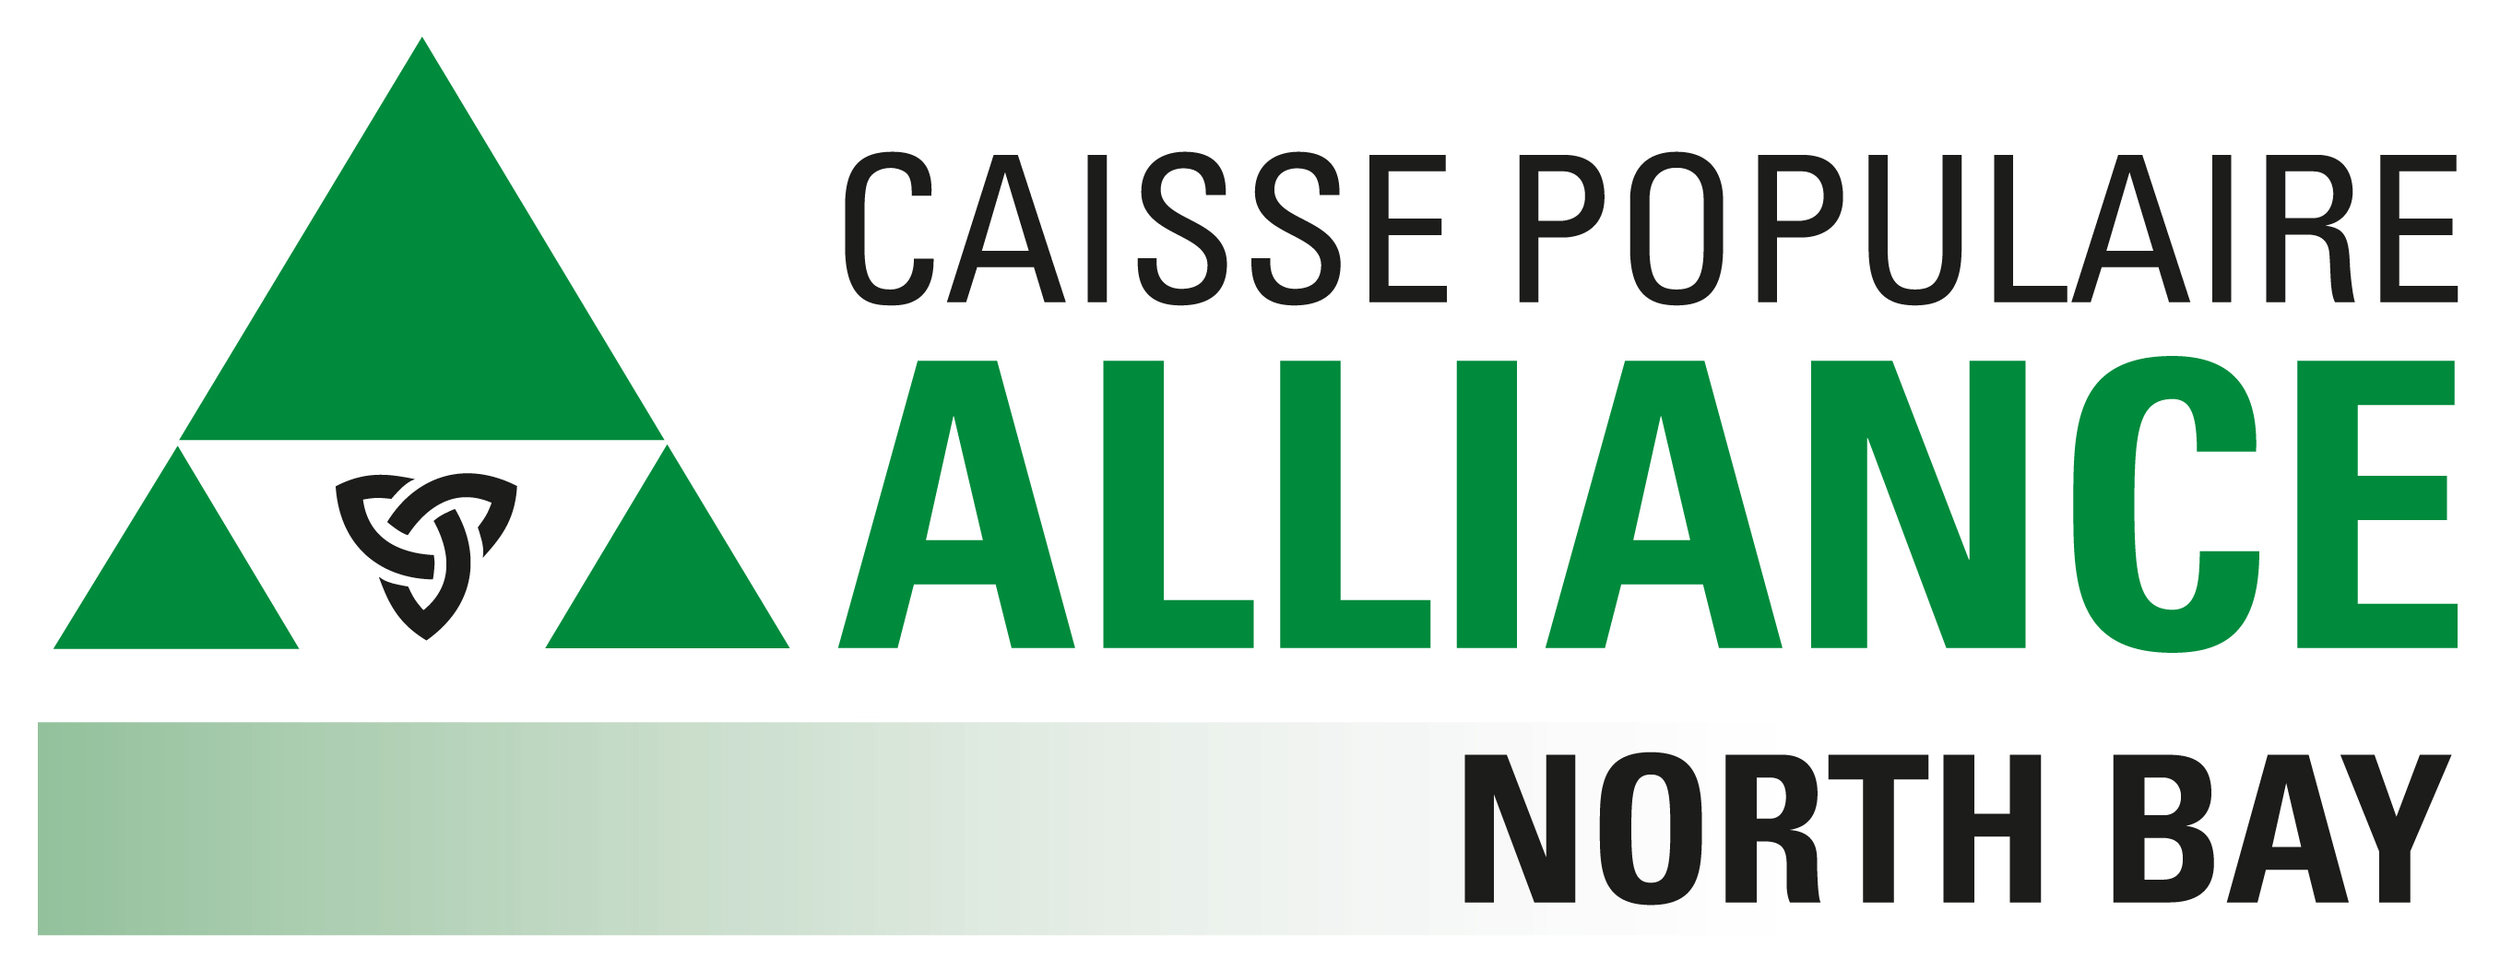 Caisse populaire Alliance North Bay logo (1).jpg